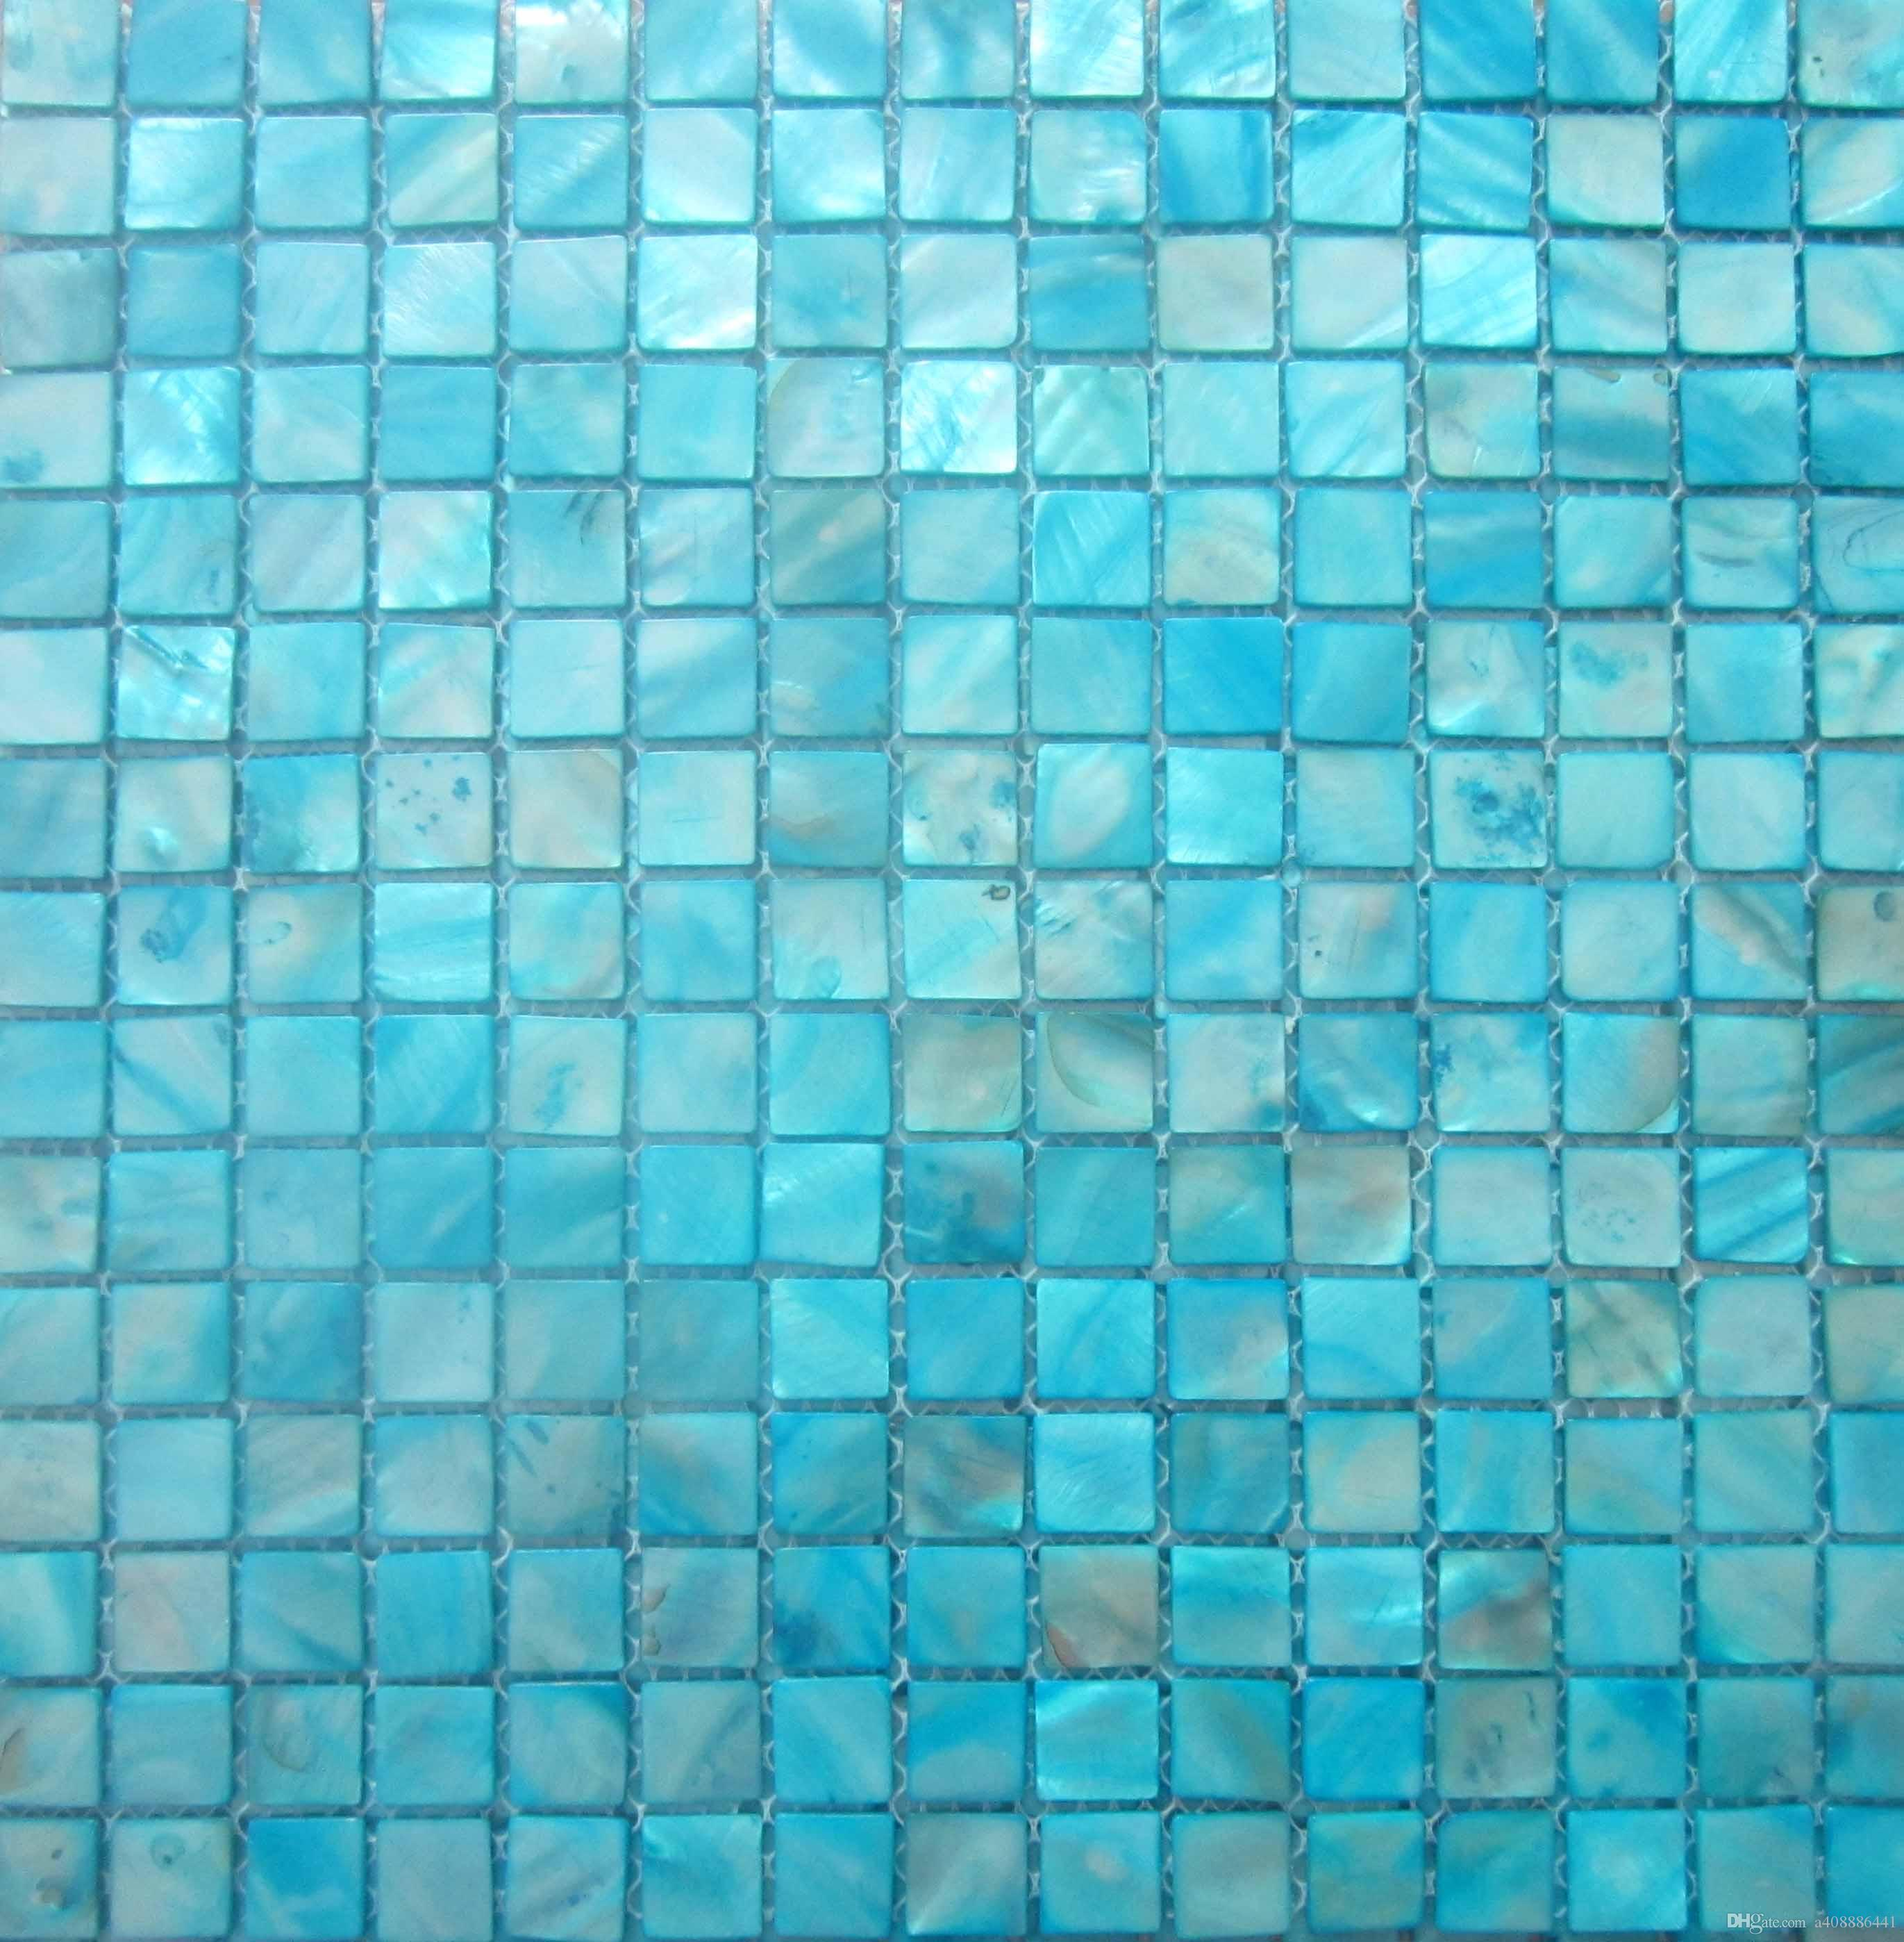 2019 Shell Mosaic Tiles Blue Mother Of Pearl Tiles